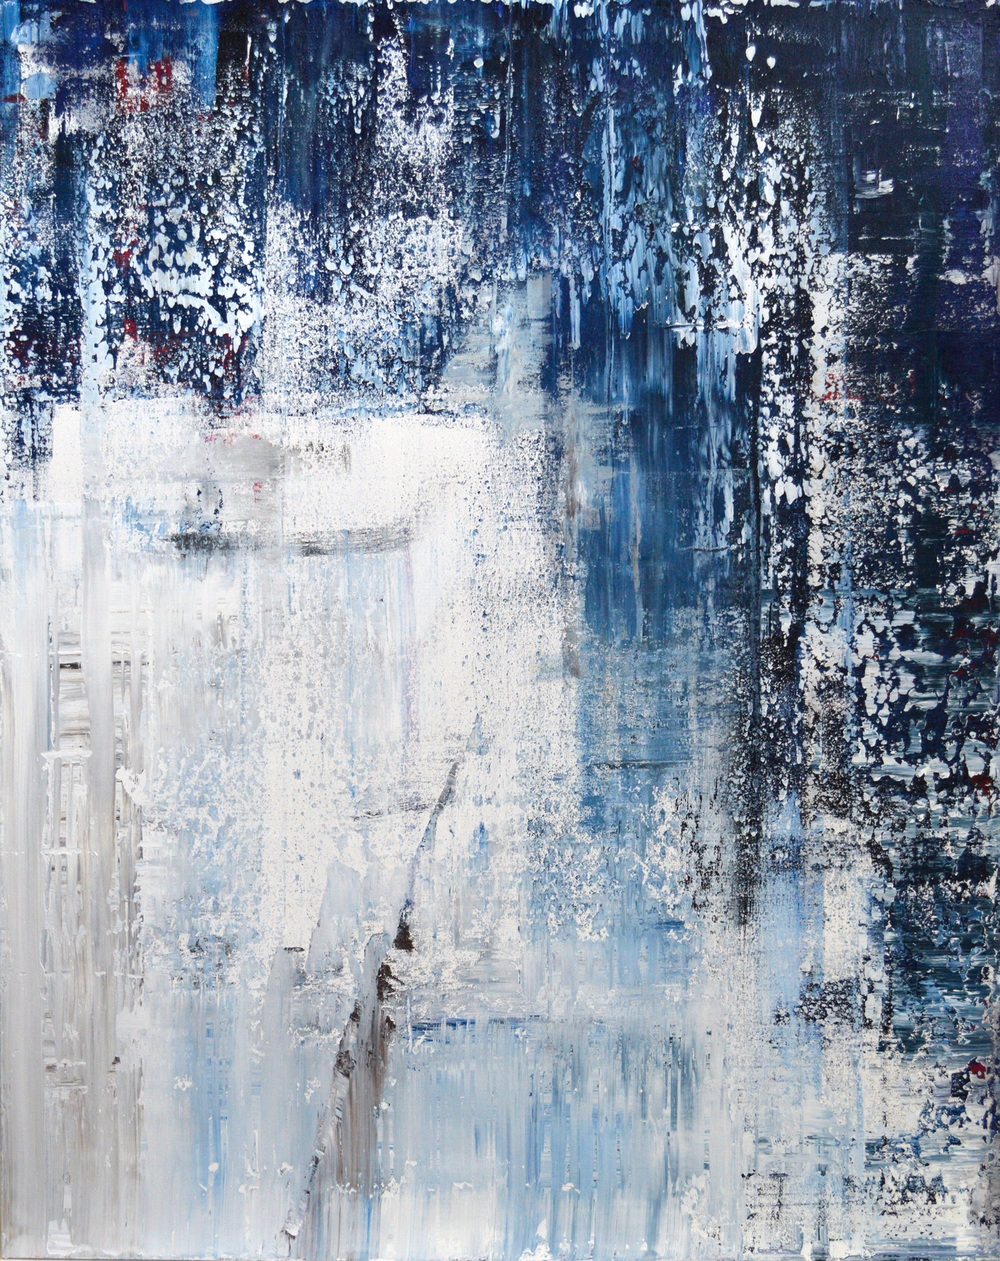 Deep Blue by John Beard, 48x60